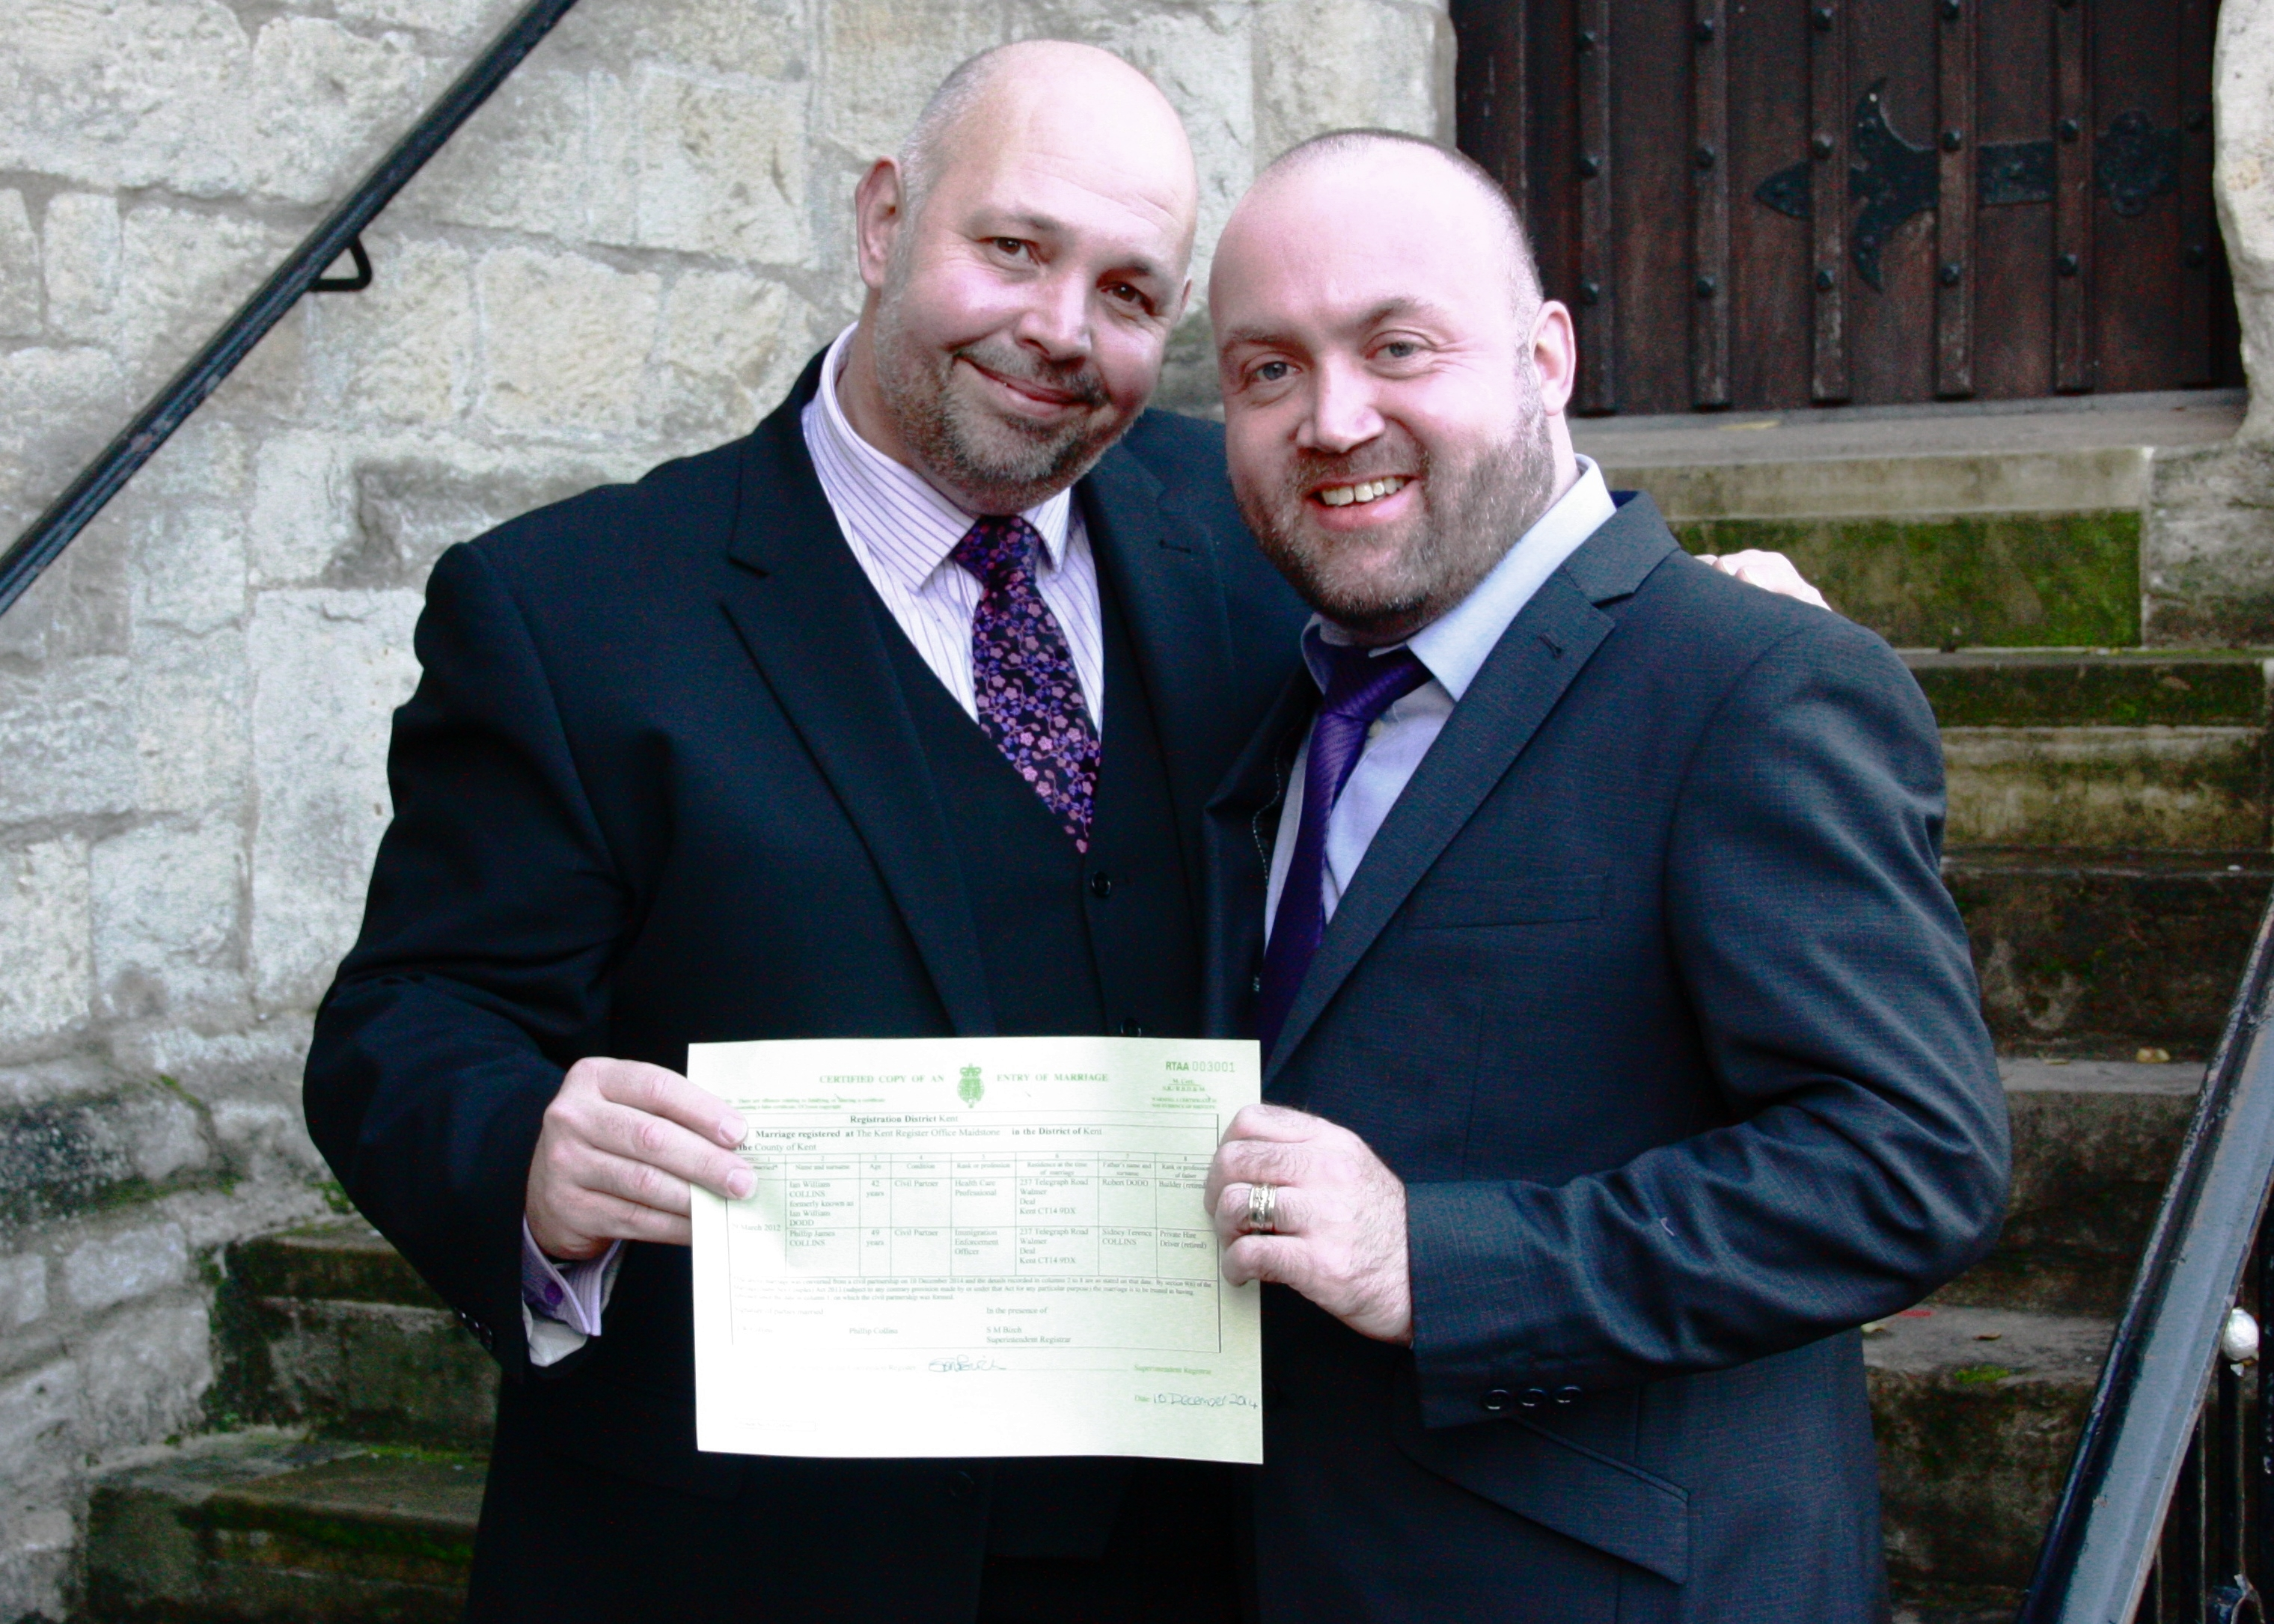 Couple become first in Kent to have civil partnership conversion